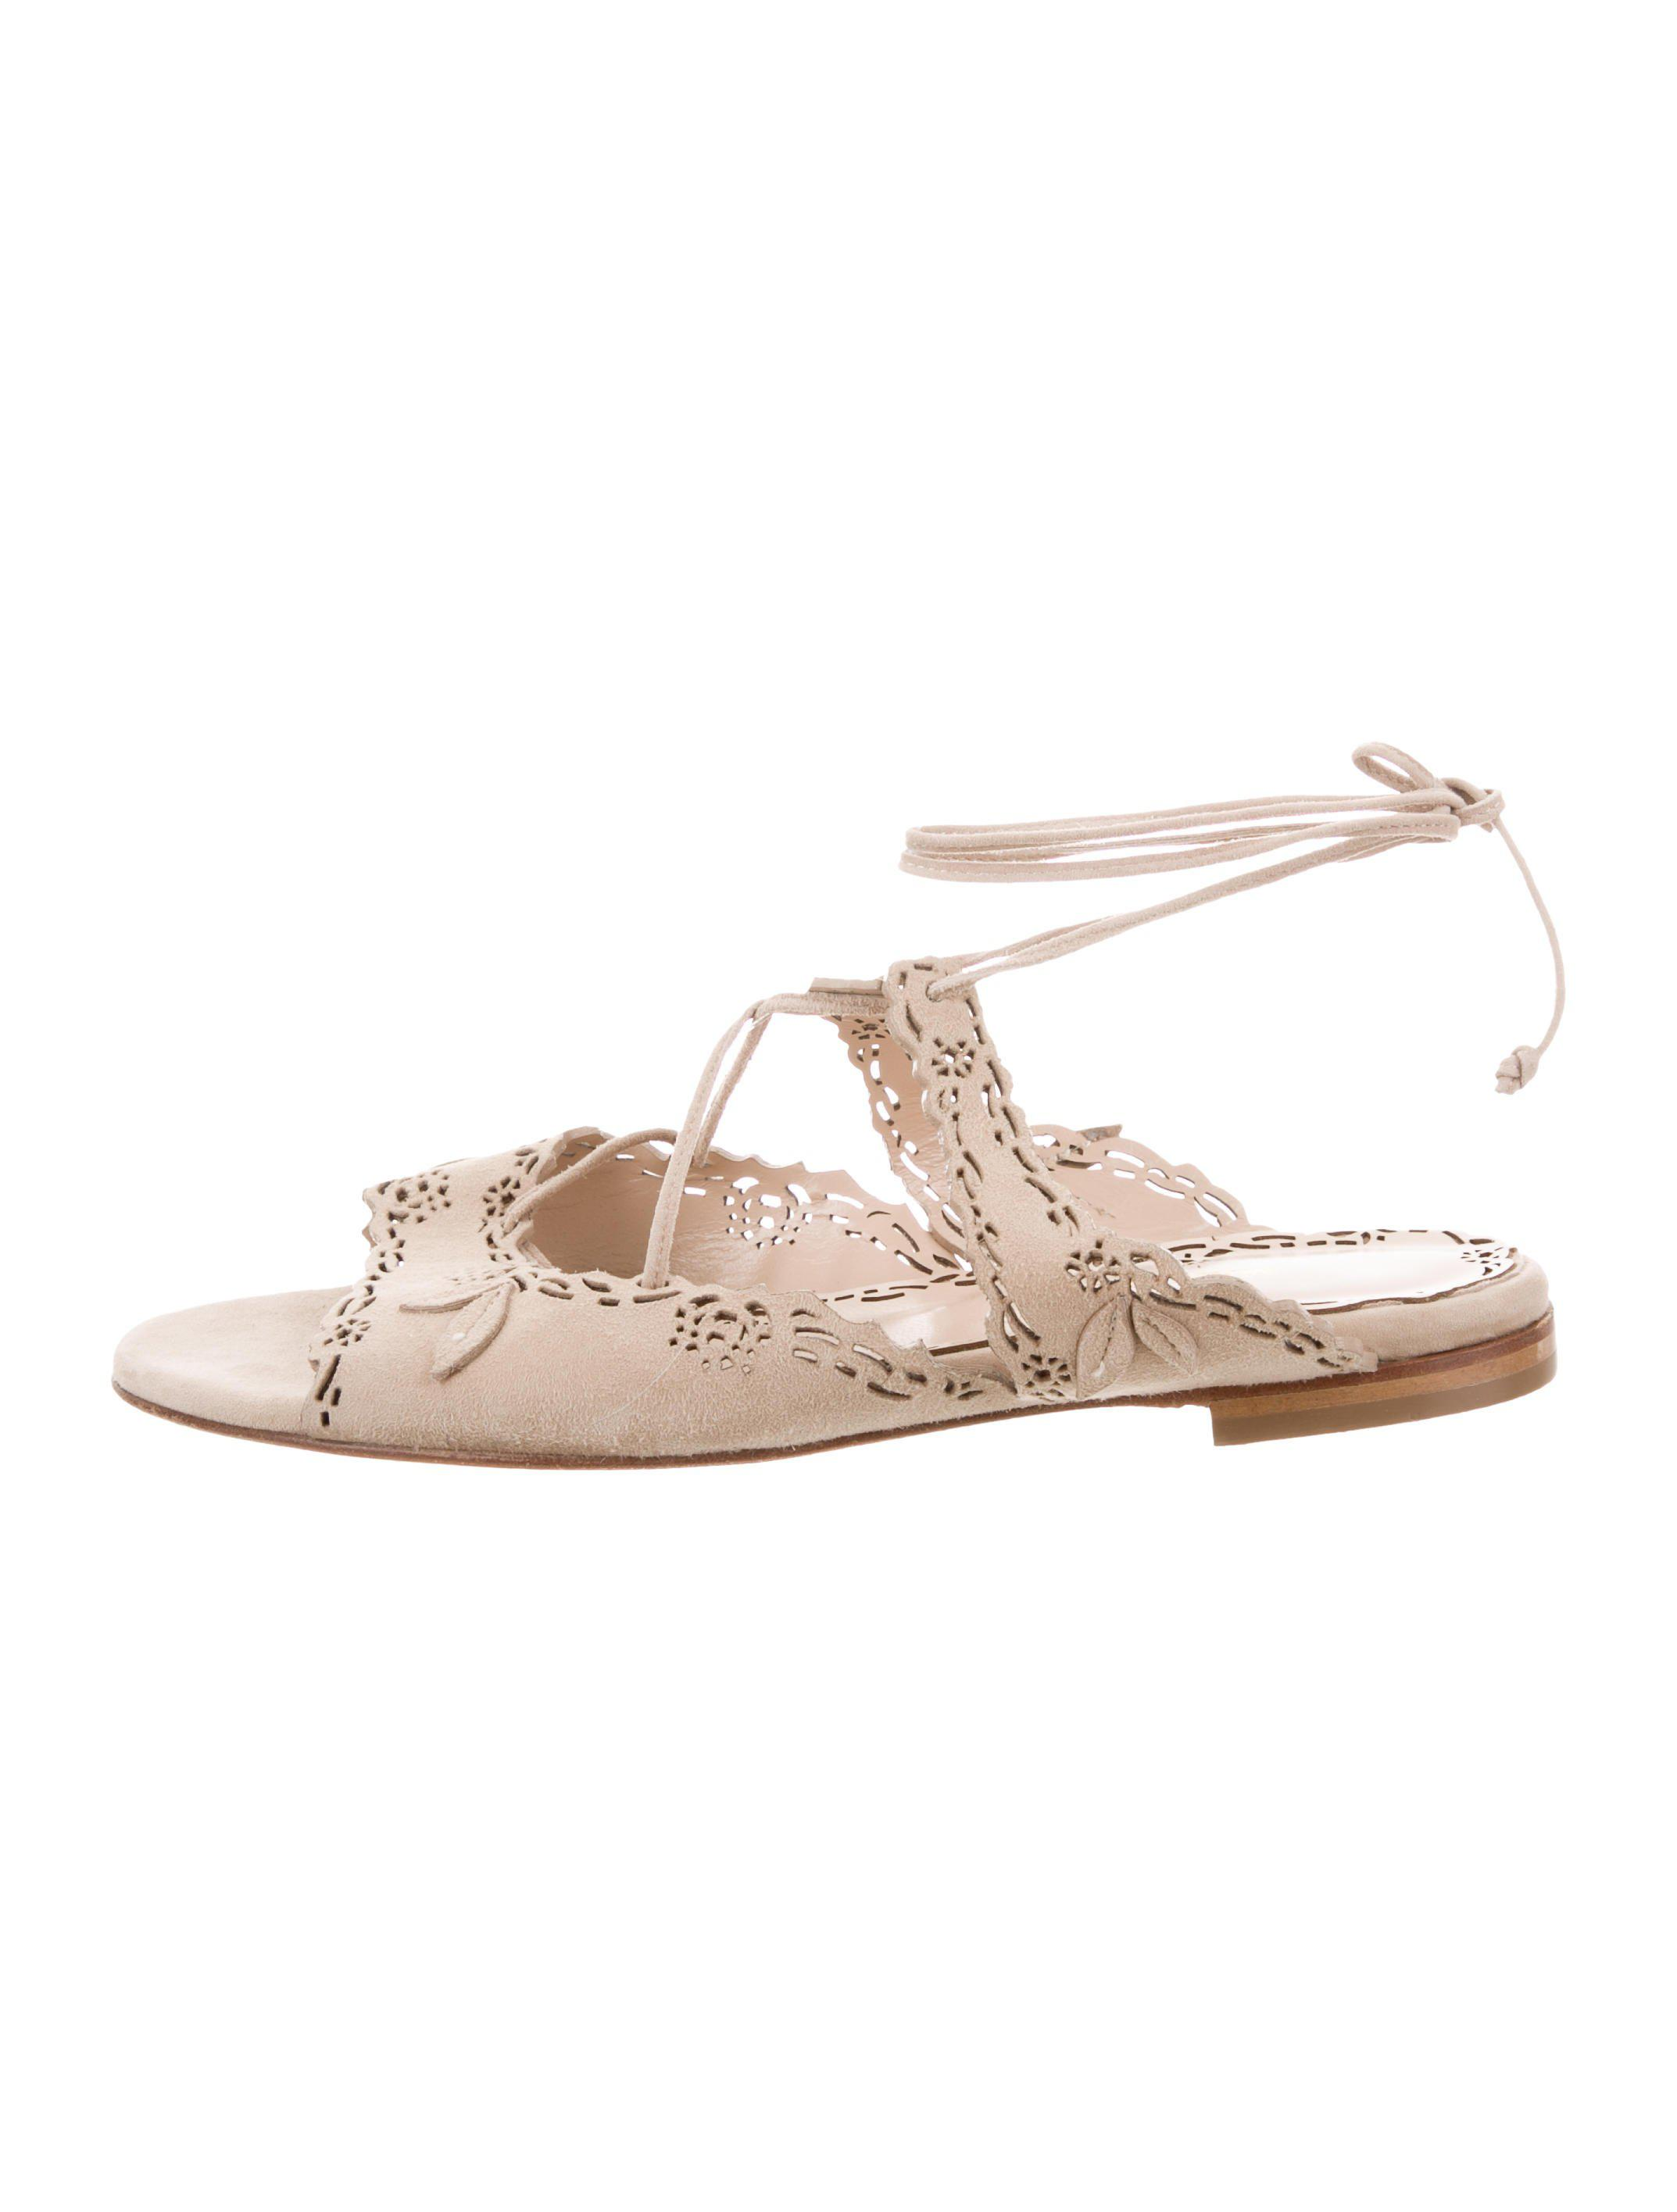 Marchesa Laser Cut Slide Sandals sale very cheap sale 100% guaranteed online for sale WgwqXy